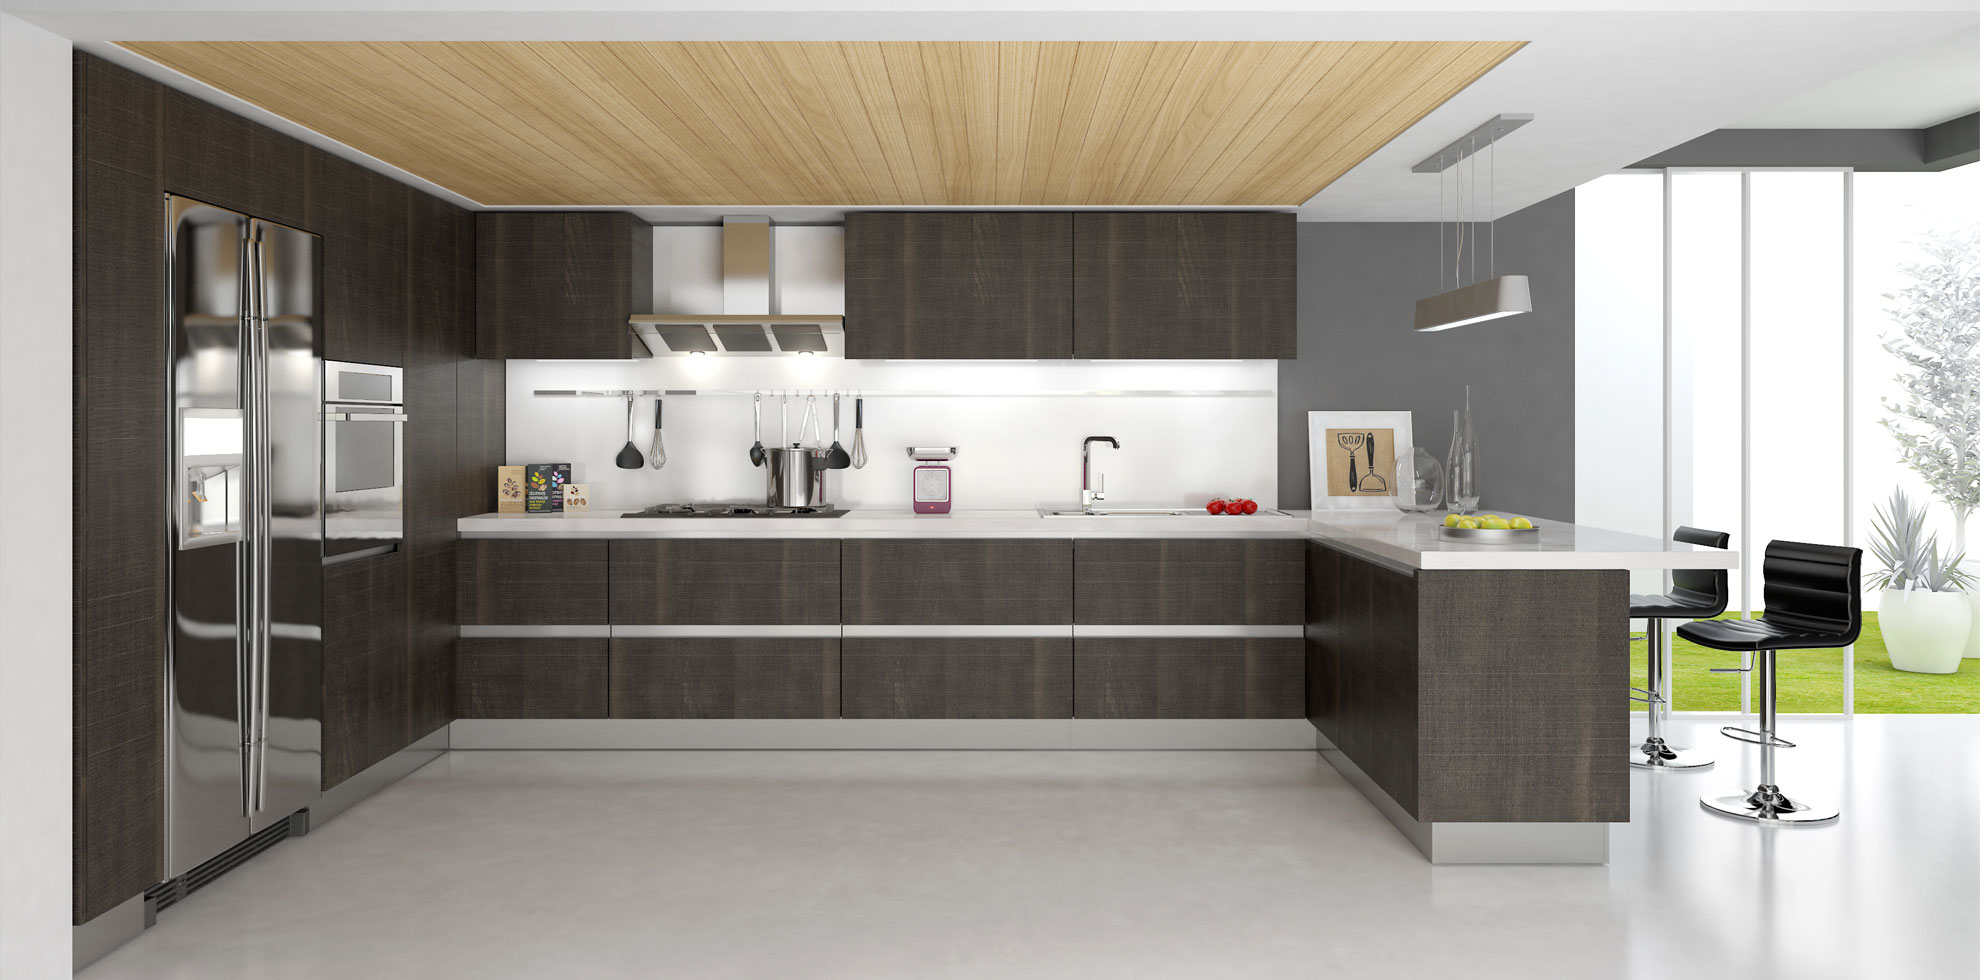 modern kitchen cabinets rta kitchen cabinets Rock RTA Modern Kitchen Cabinets